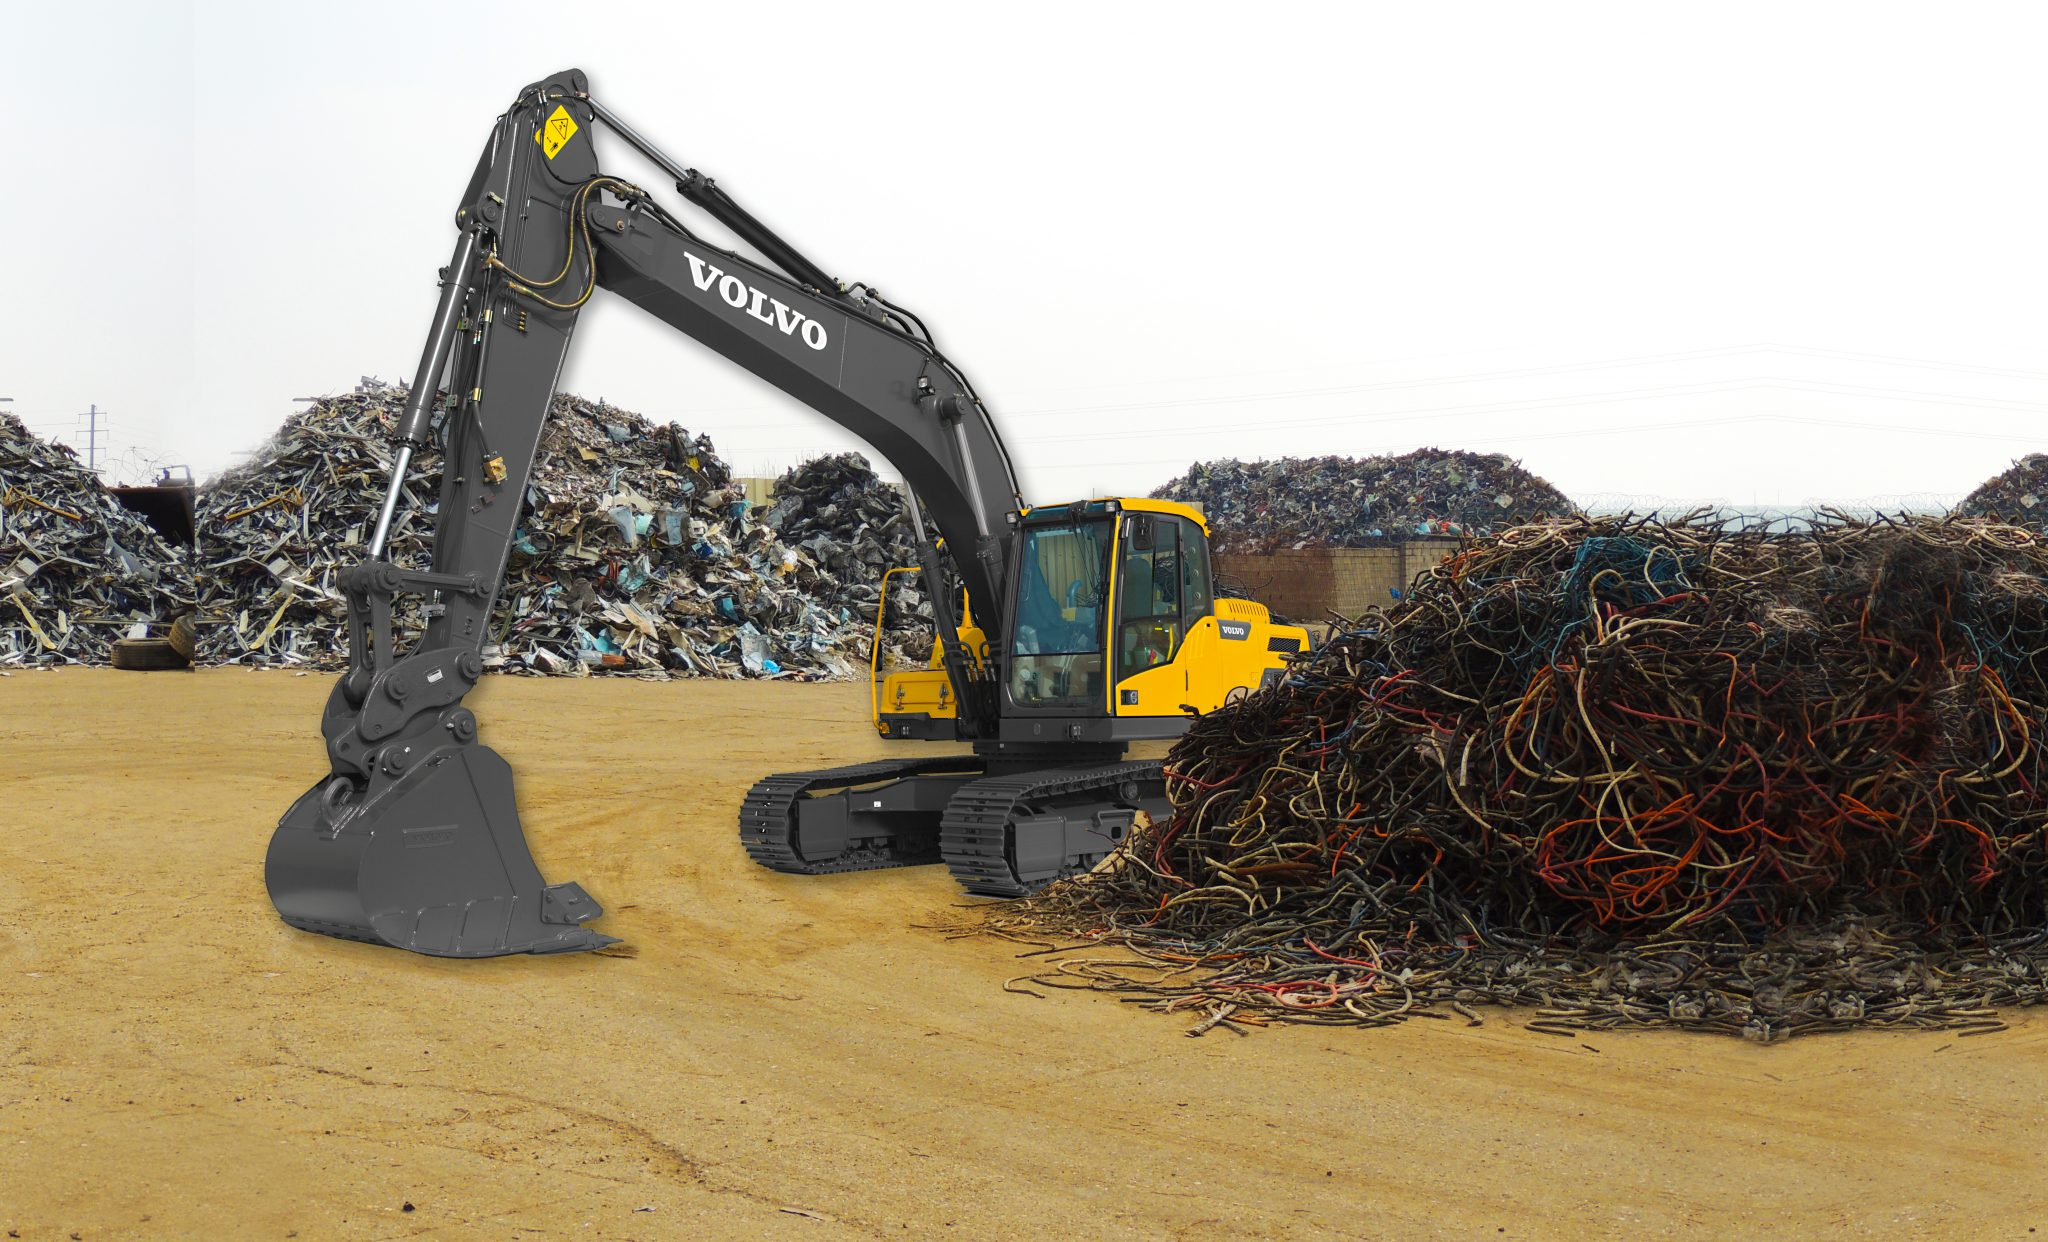 High Performance, Low Fuel Consumption - The Volvo EC220D Excavator 13